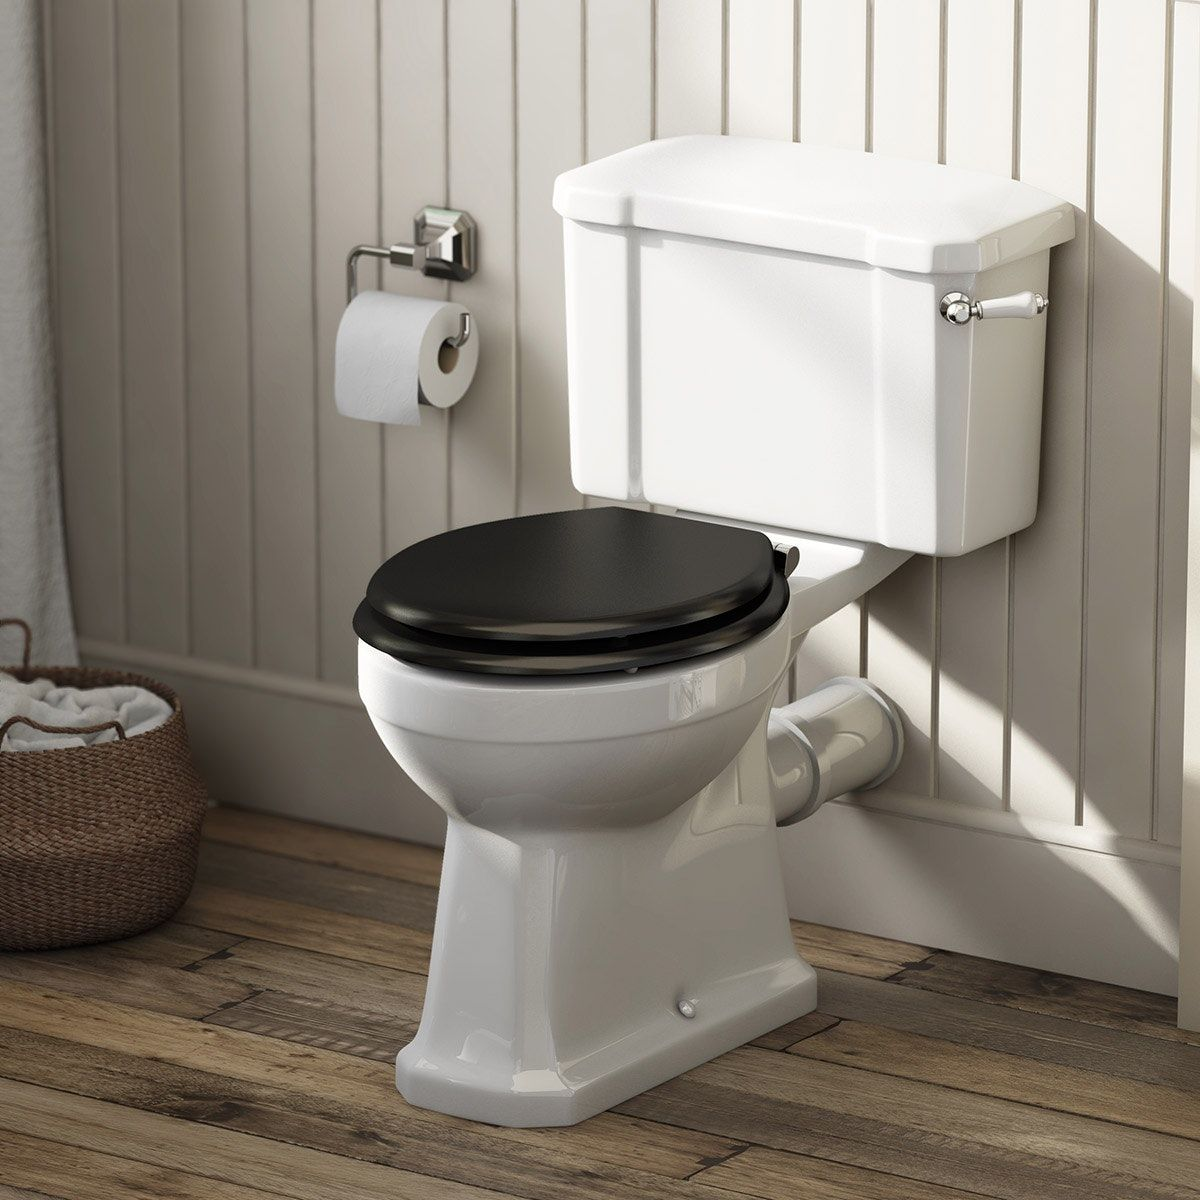 Astonishing The Bath Co Camberley Close Coupled Toilet With Wooden Soft Spiritservingveterans Wood Chair Design Ideas Spiritservingveteransorg